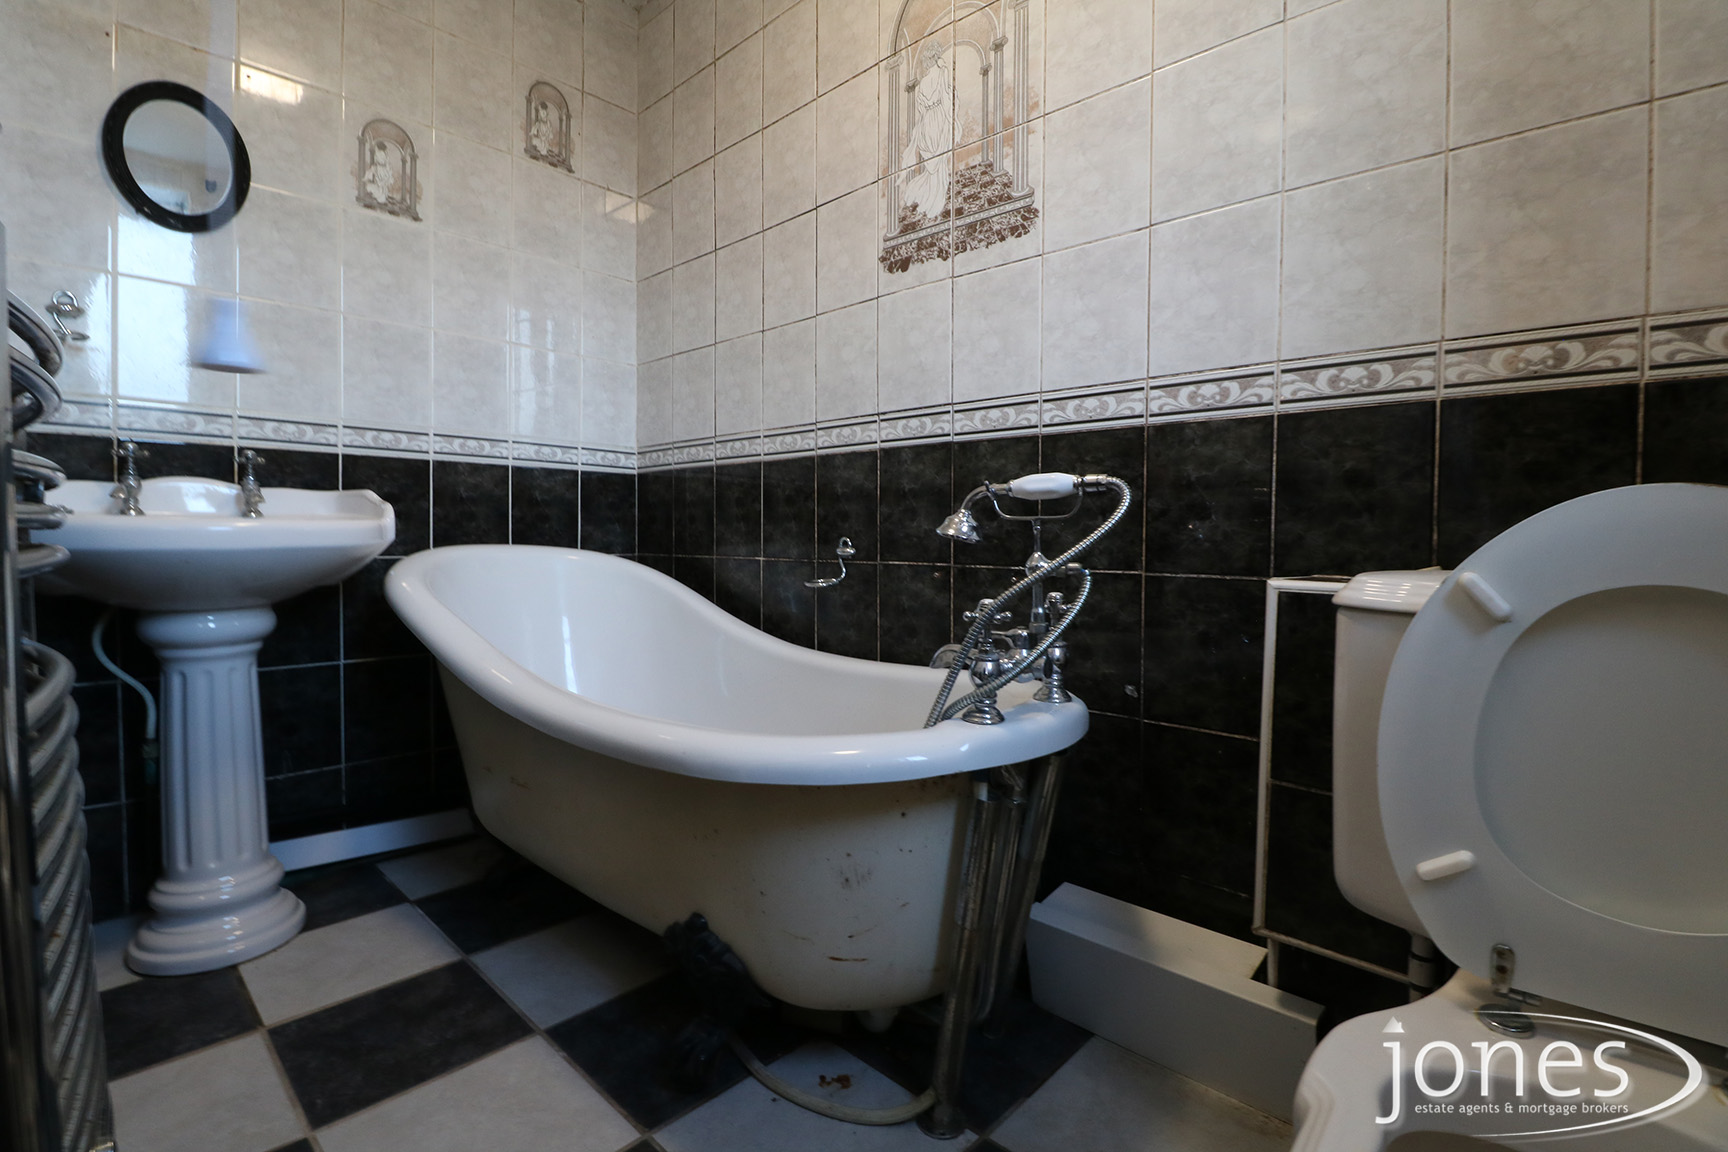 Home for Sale Let - Photo 04 Greta Road,Norton,Stockton on tees,TS20 1BA